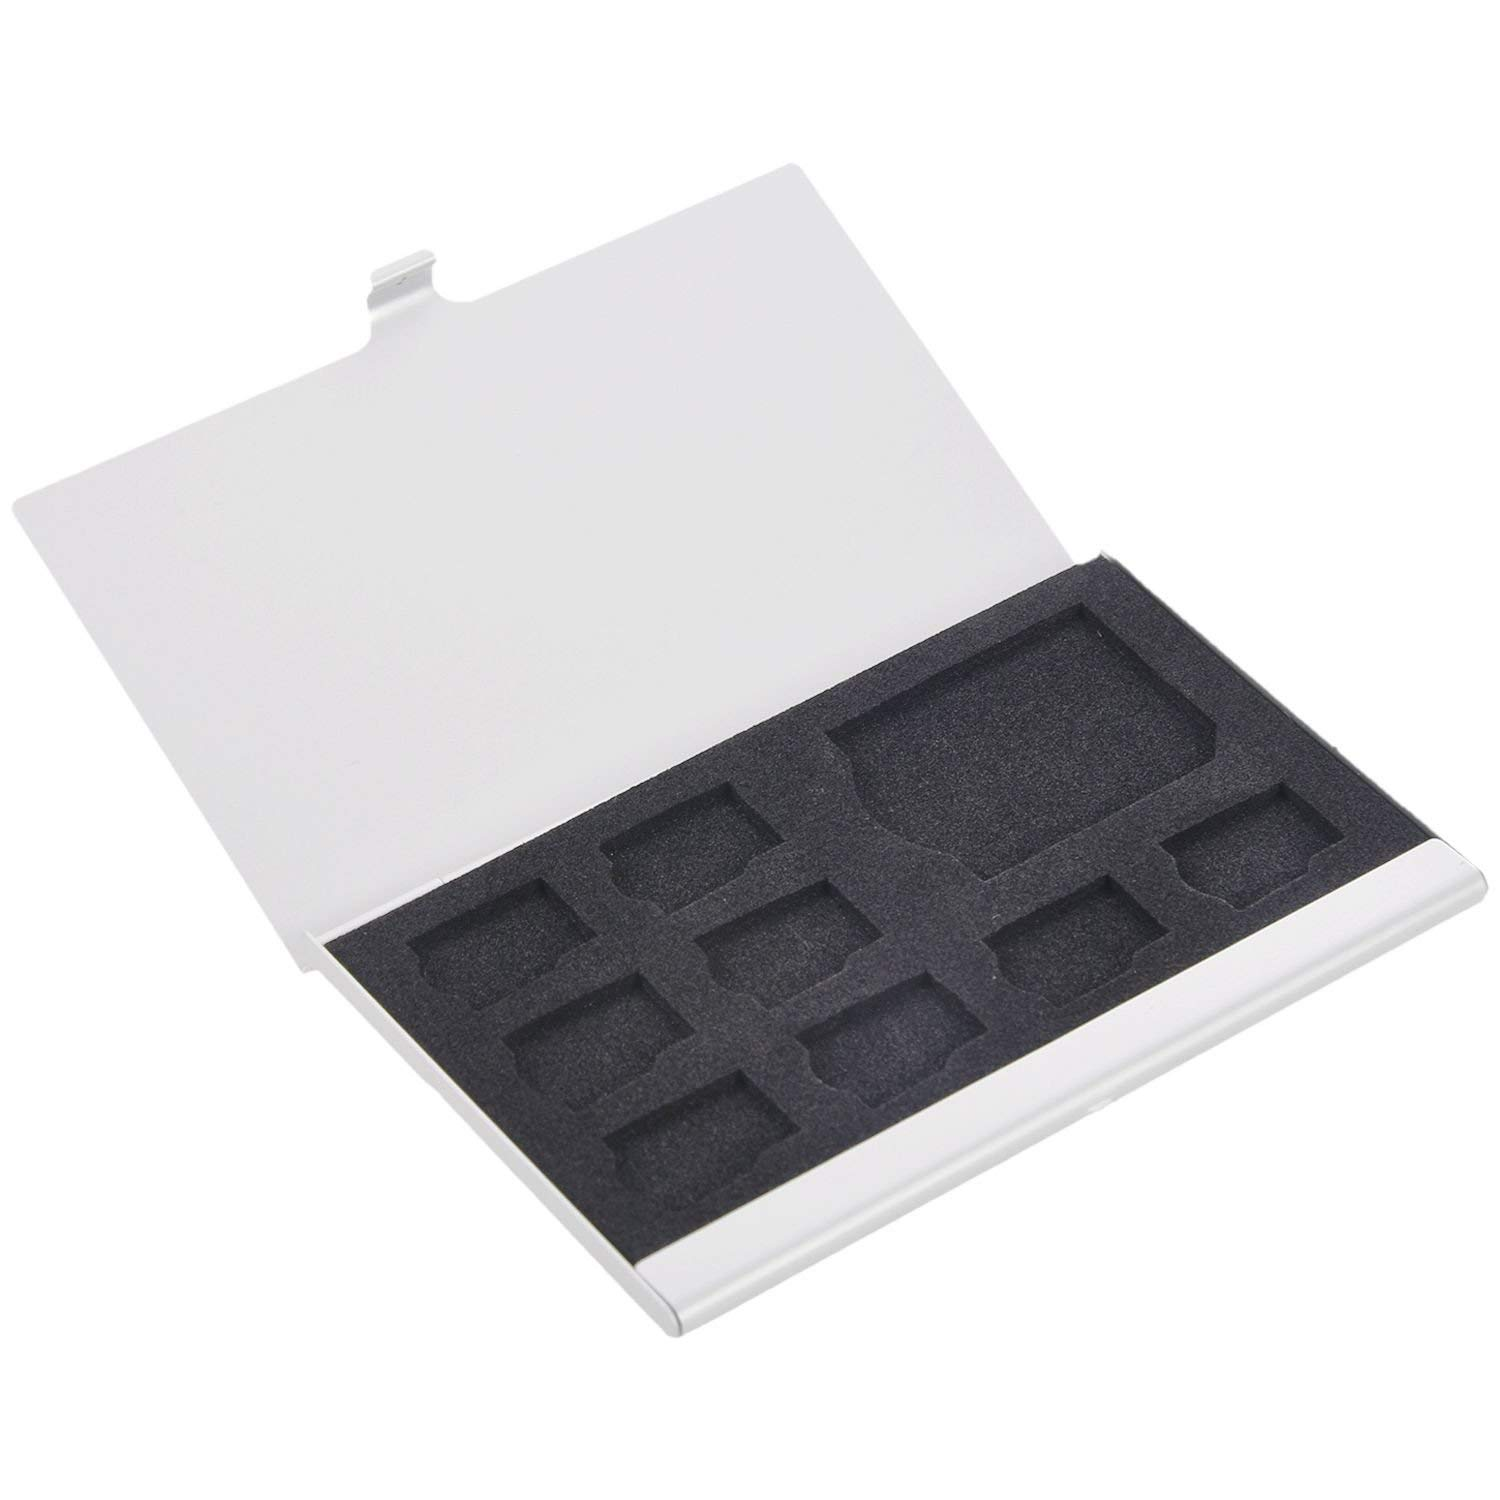 SODIAL(R) 9 Micro-SD/SD Memory Card Storage Holder Box Protector Metal Cases 8 TF&1 SD